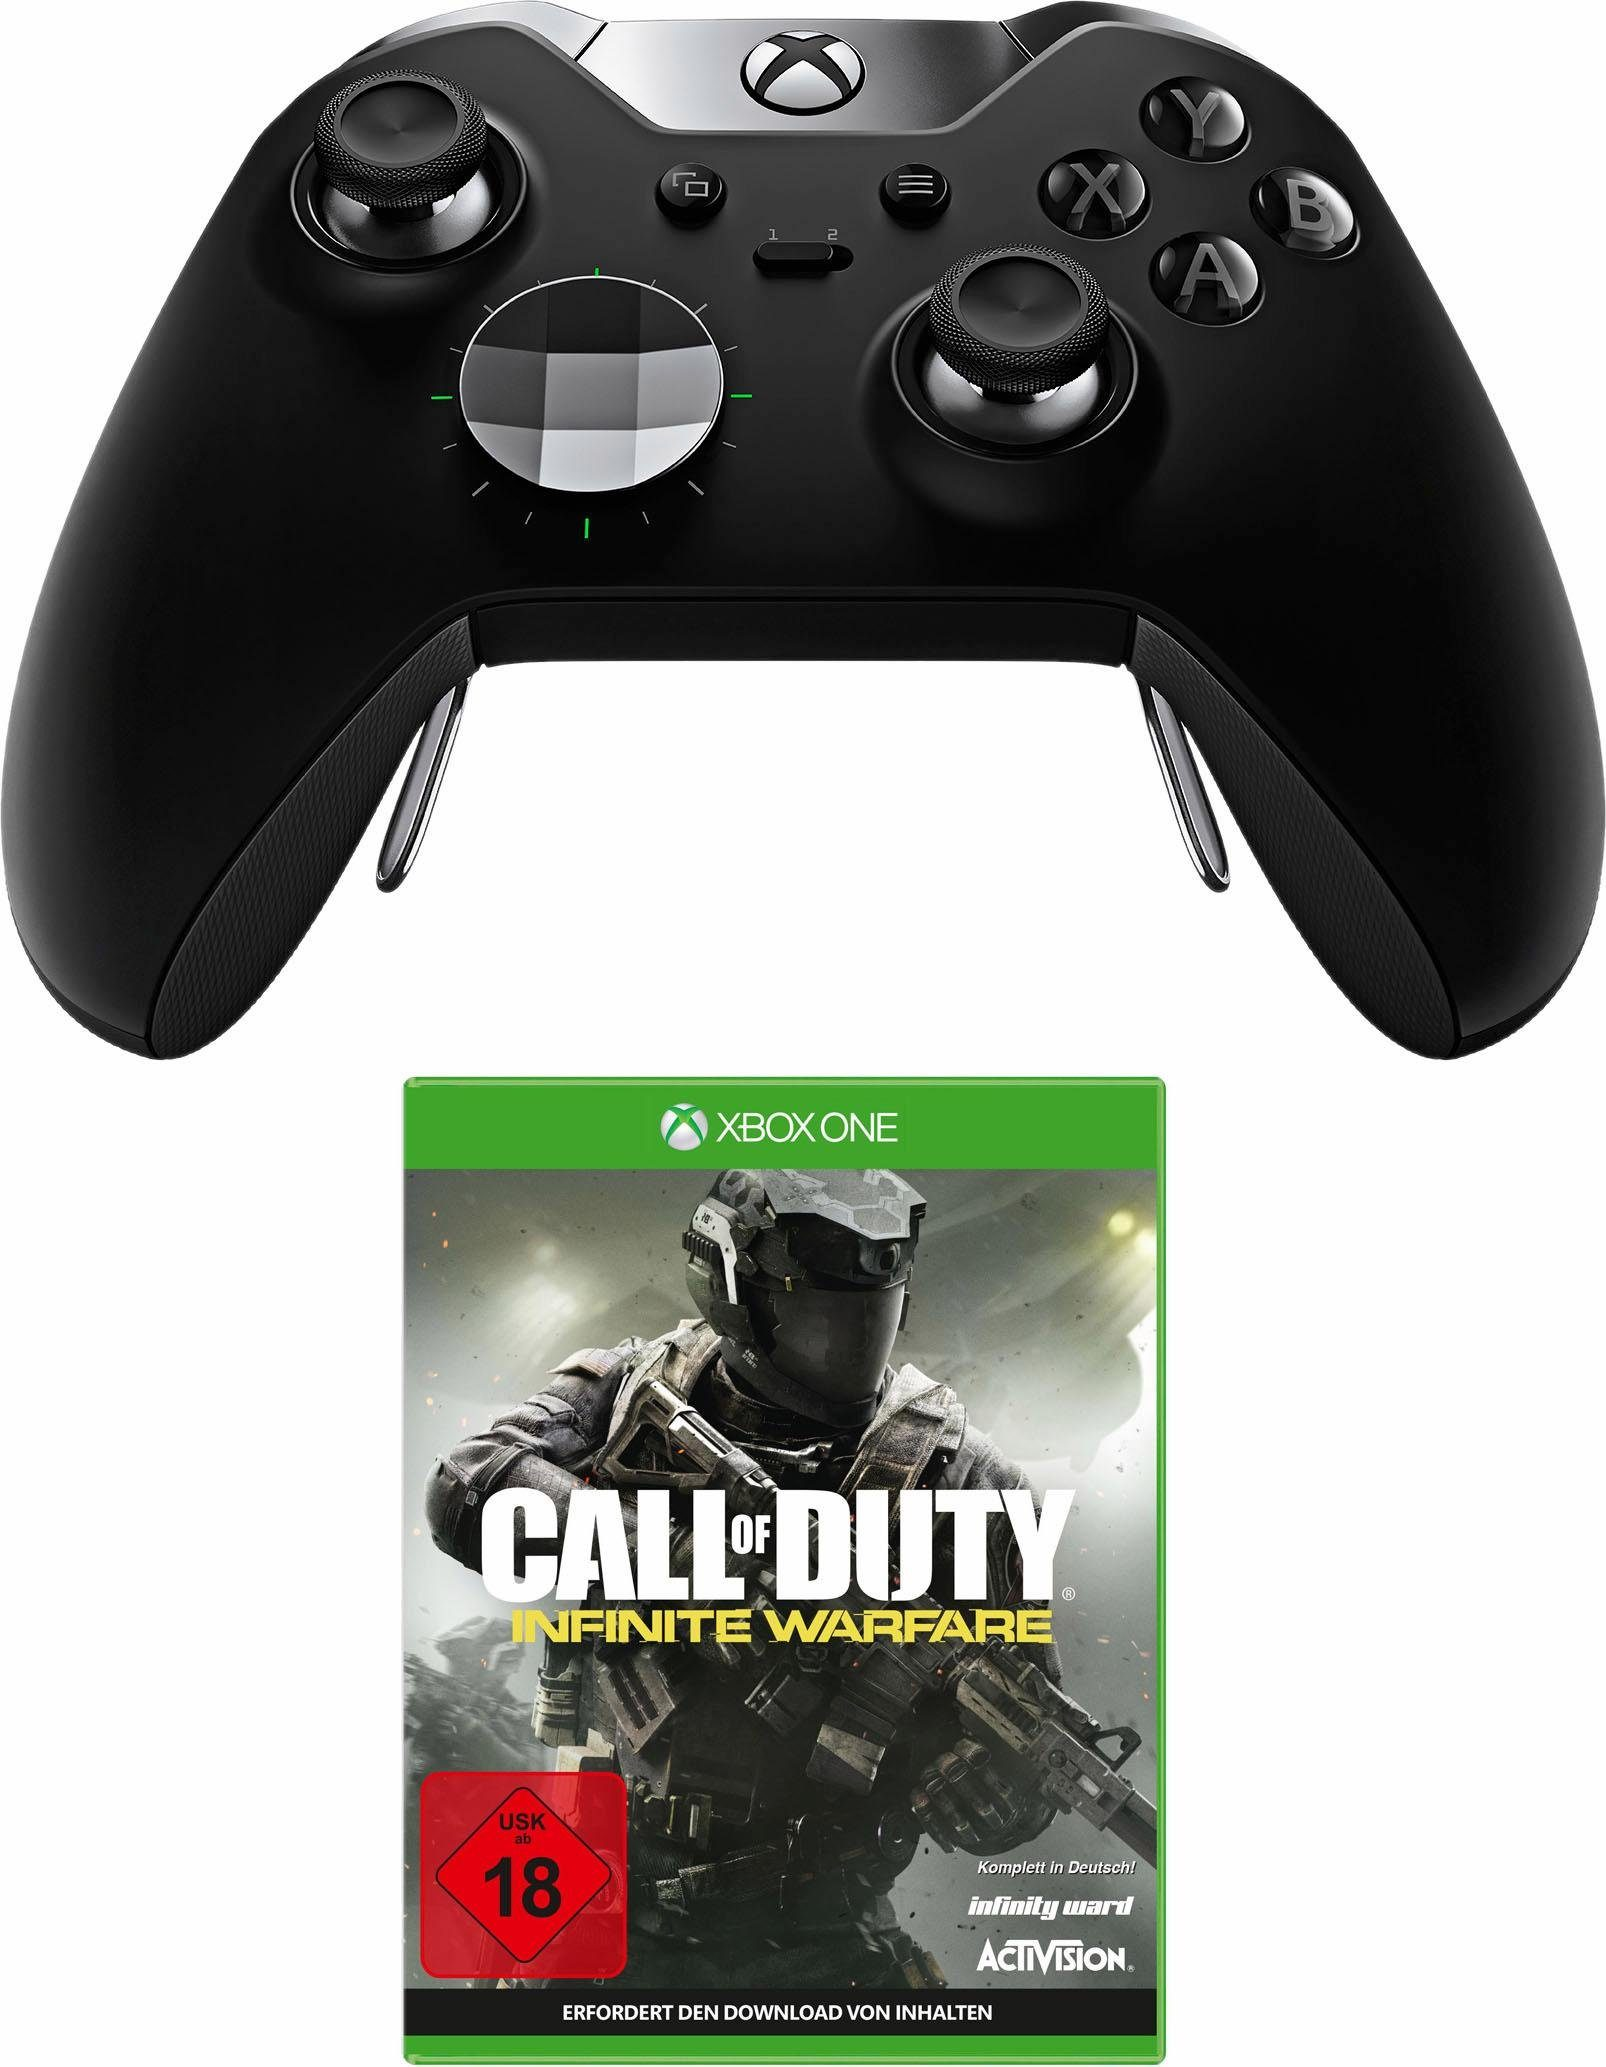 Xbox One Elite Controller + Call of Duty Infinite Warfare